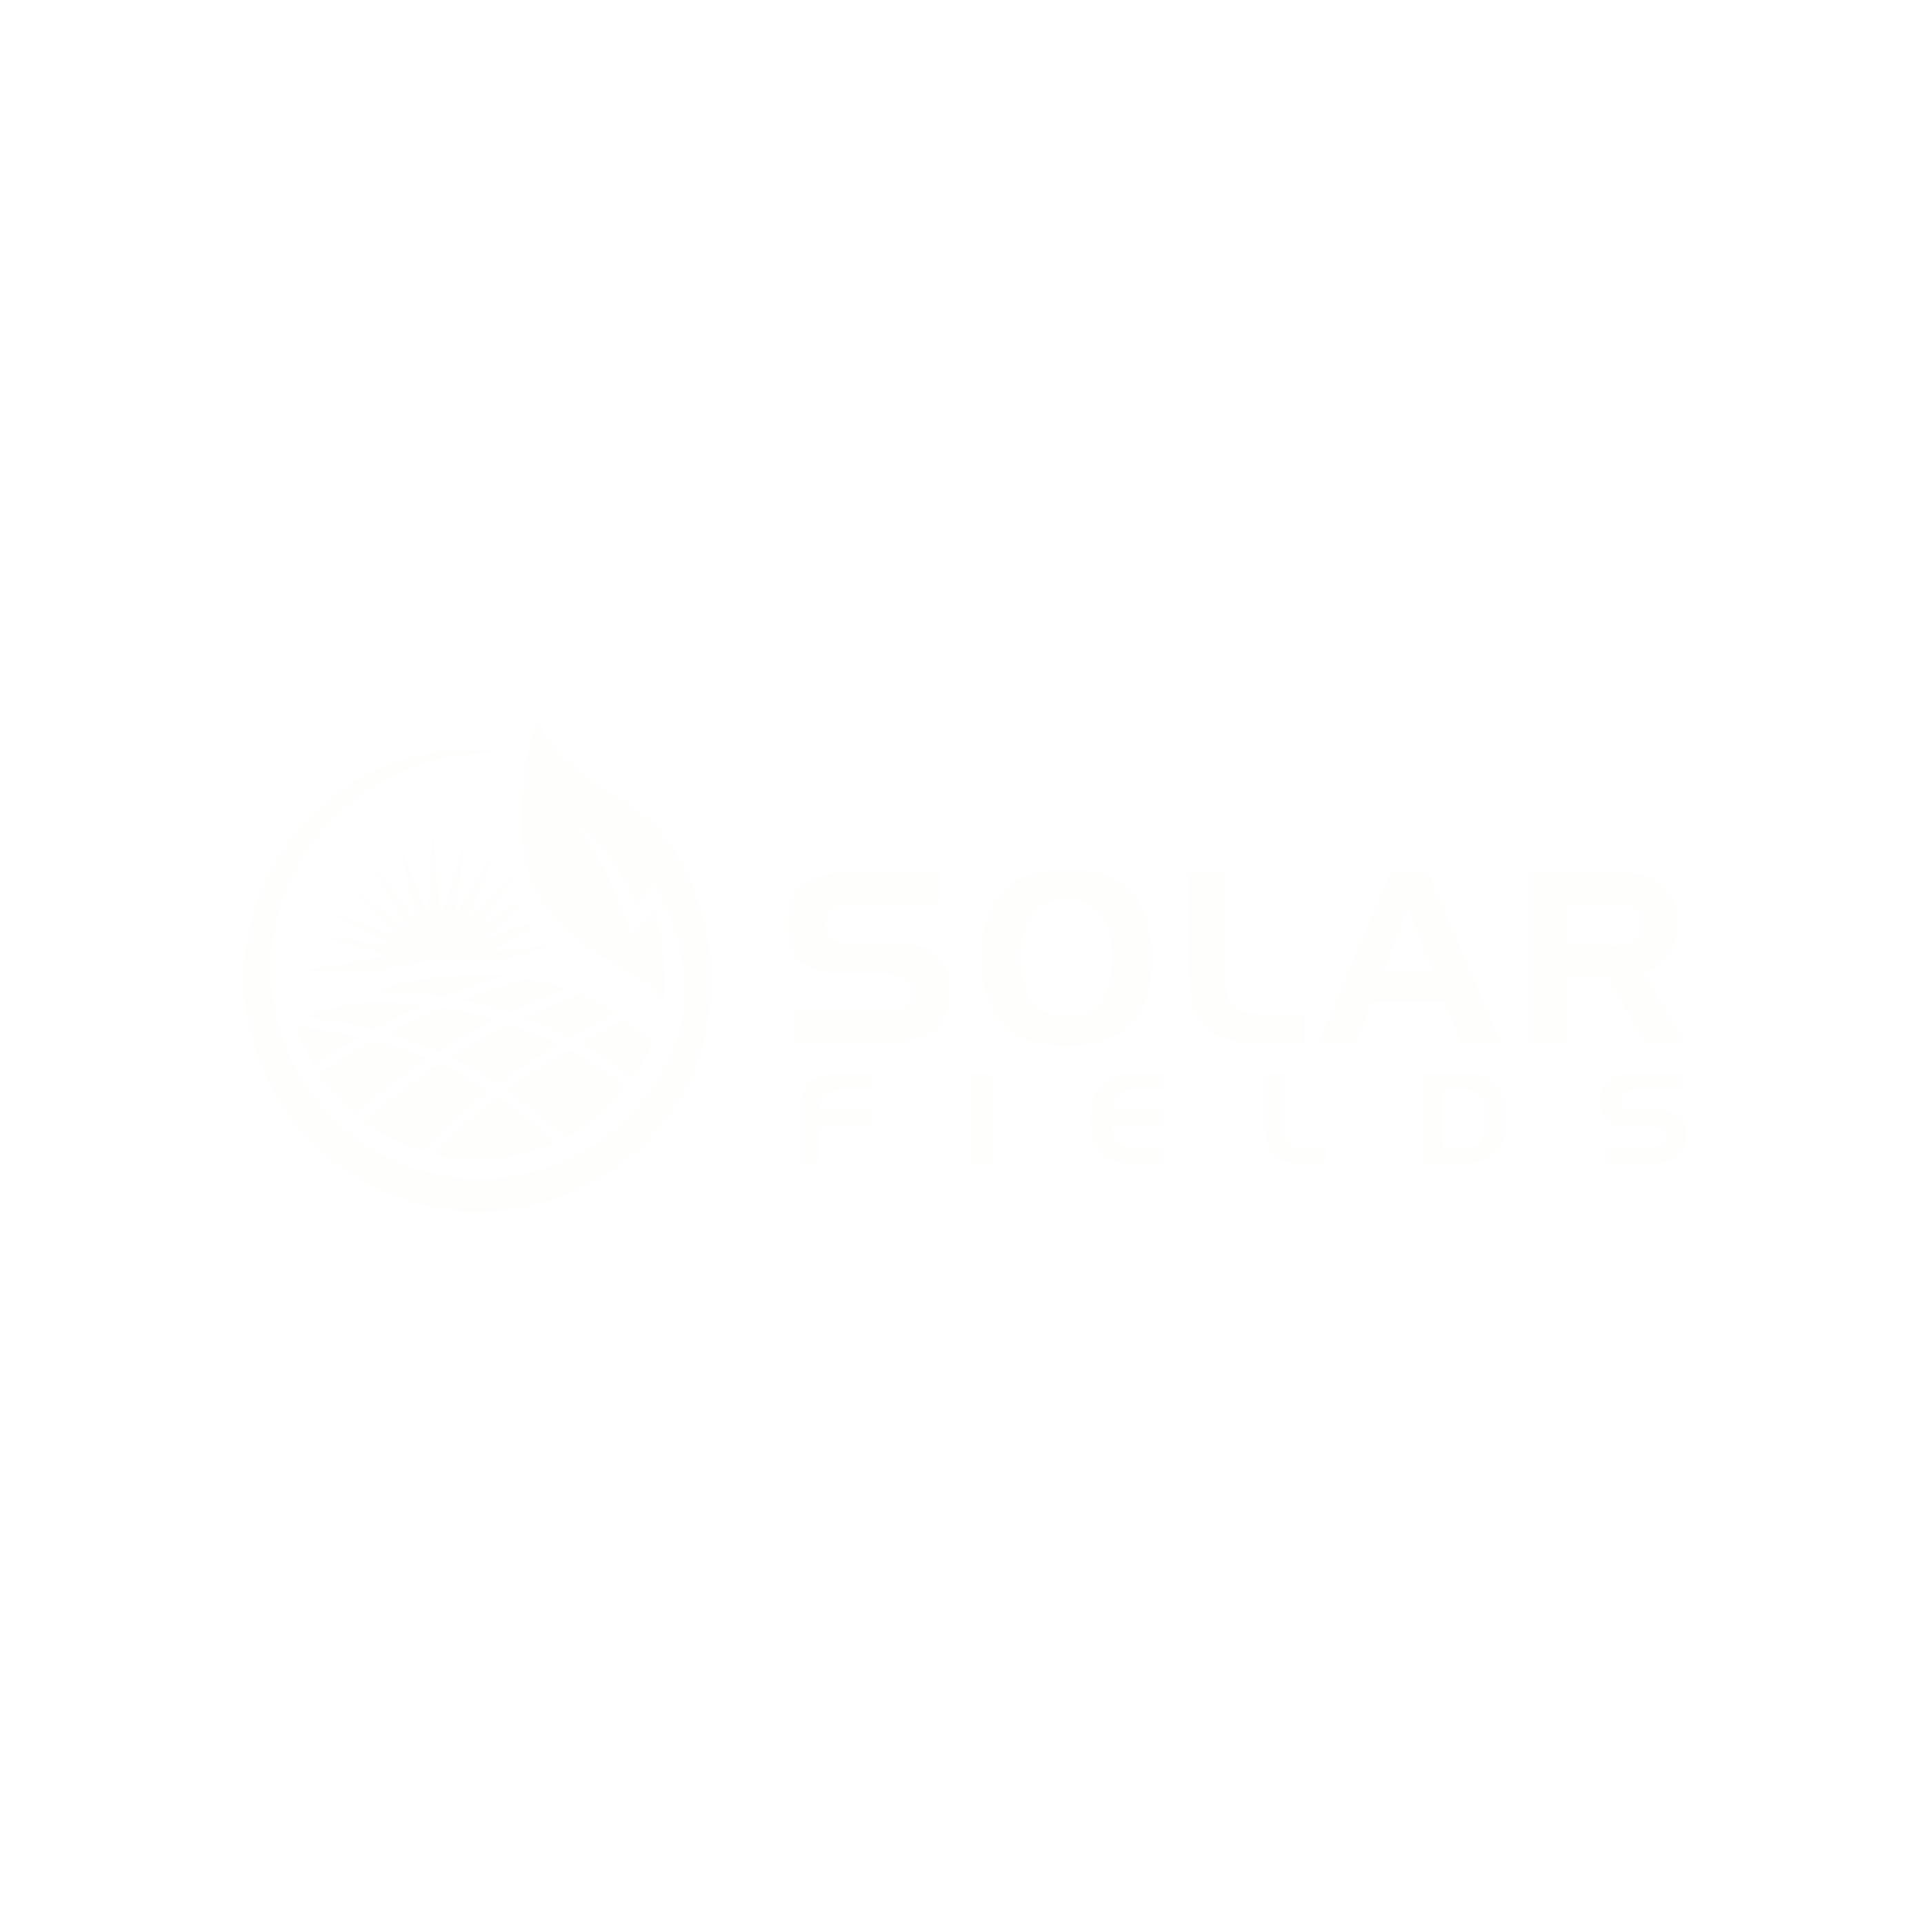 Solar Fields is looking for a lifetime logo.